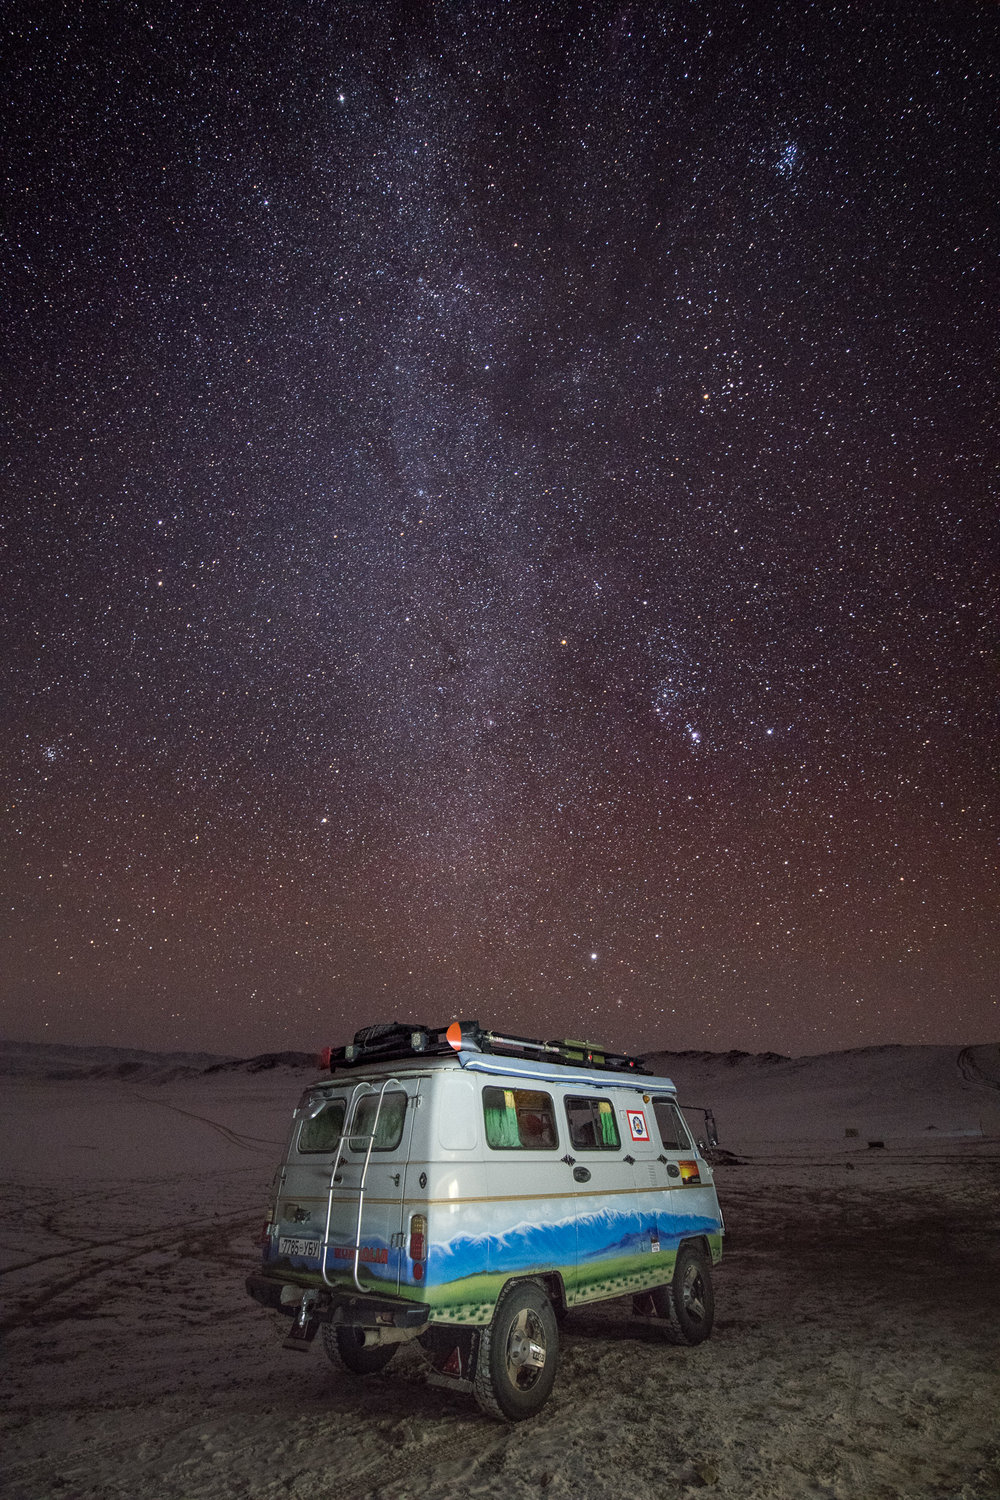 Our Mongolian passion wagon. ISO 5000, 20 secs, F2.8. With some Lightroom tweaking only.